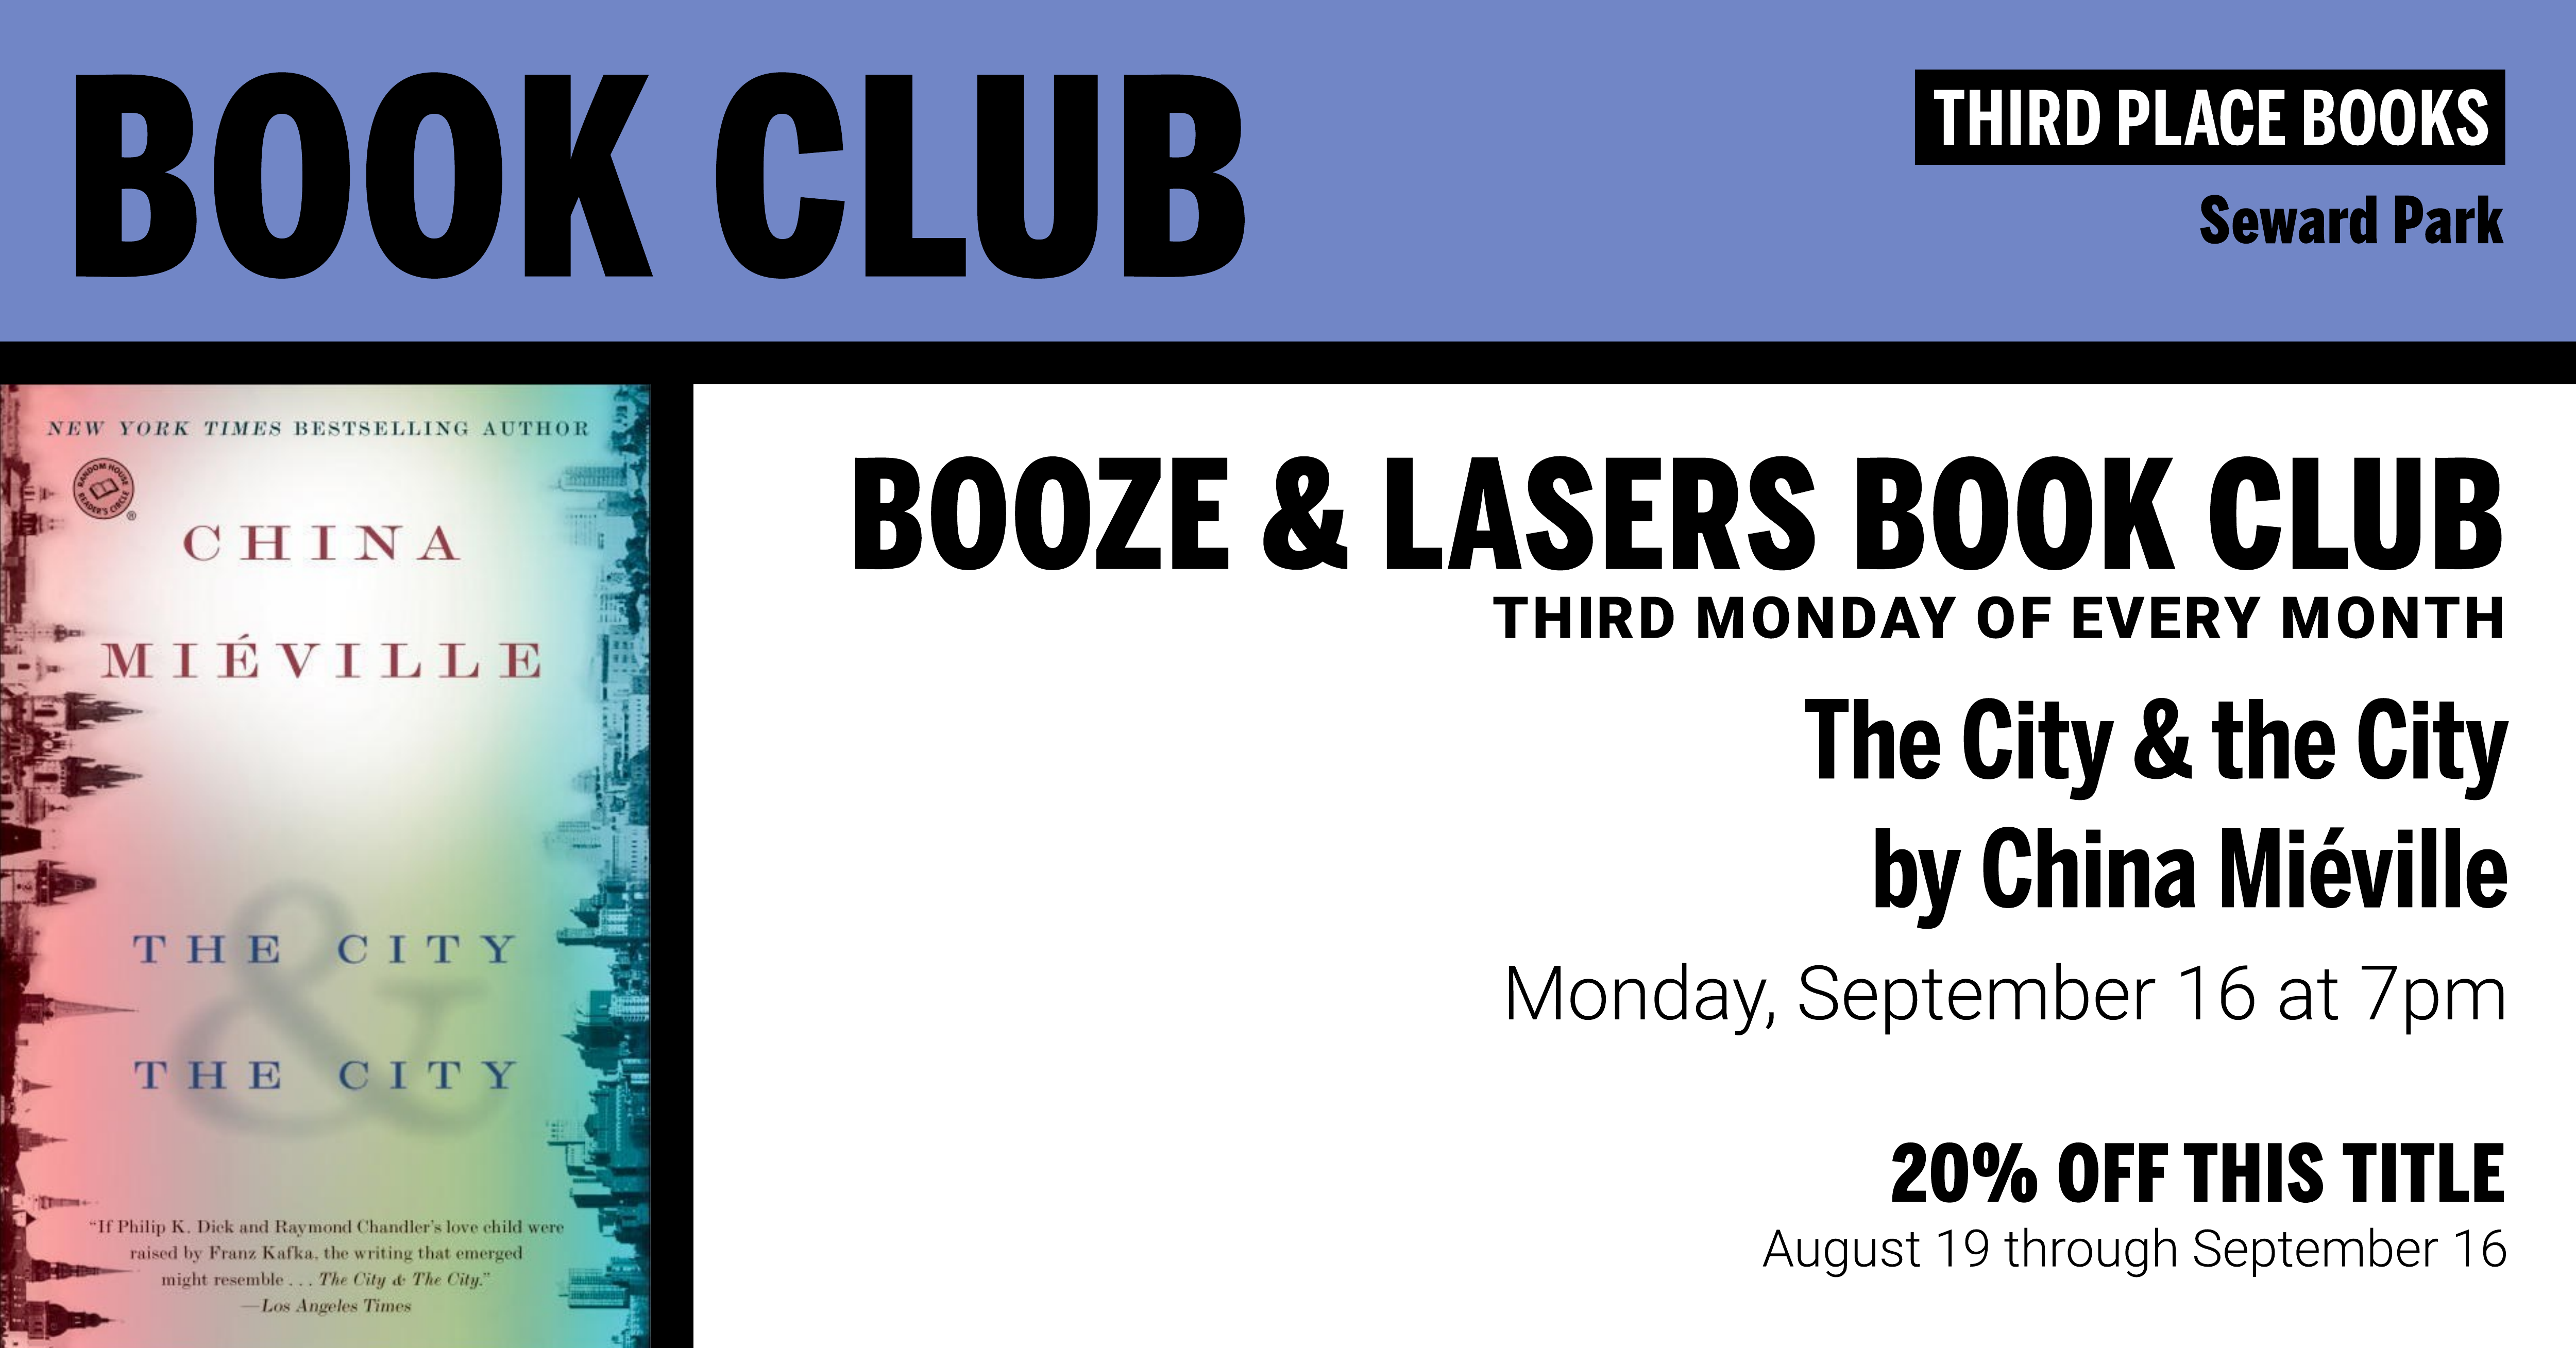 Booze & Lasers Book Club discussing The City & the City by China Miéville on Monday, September 16 at 7pm